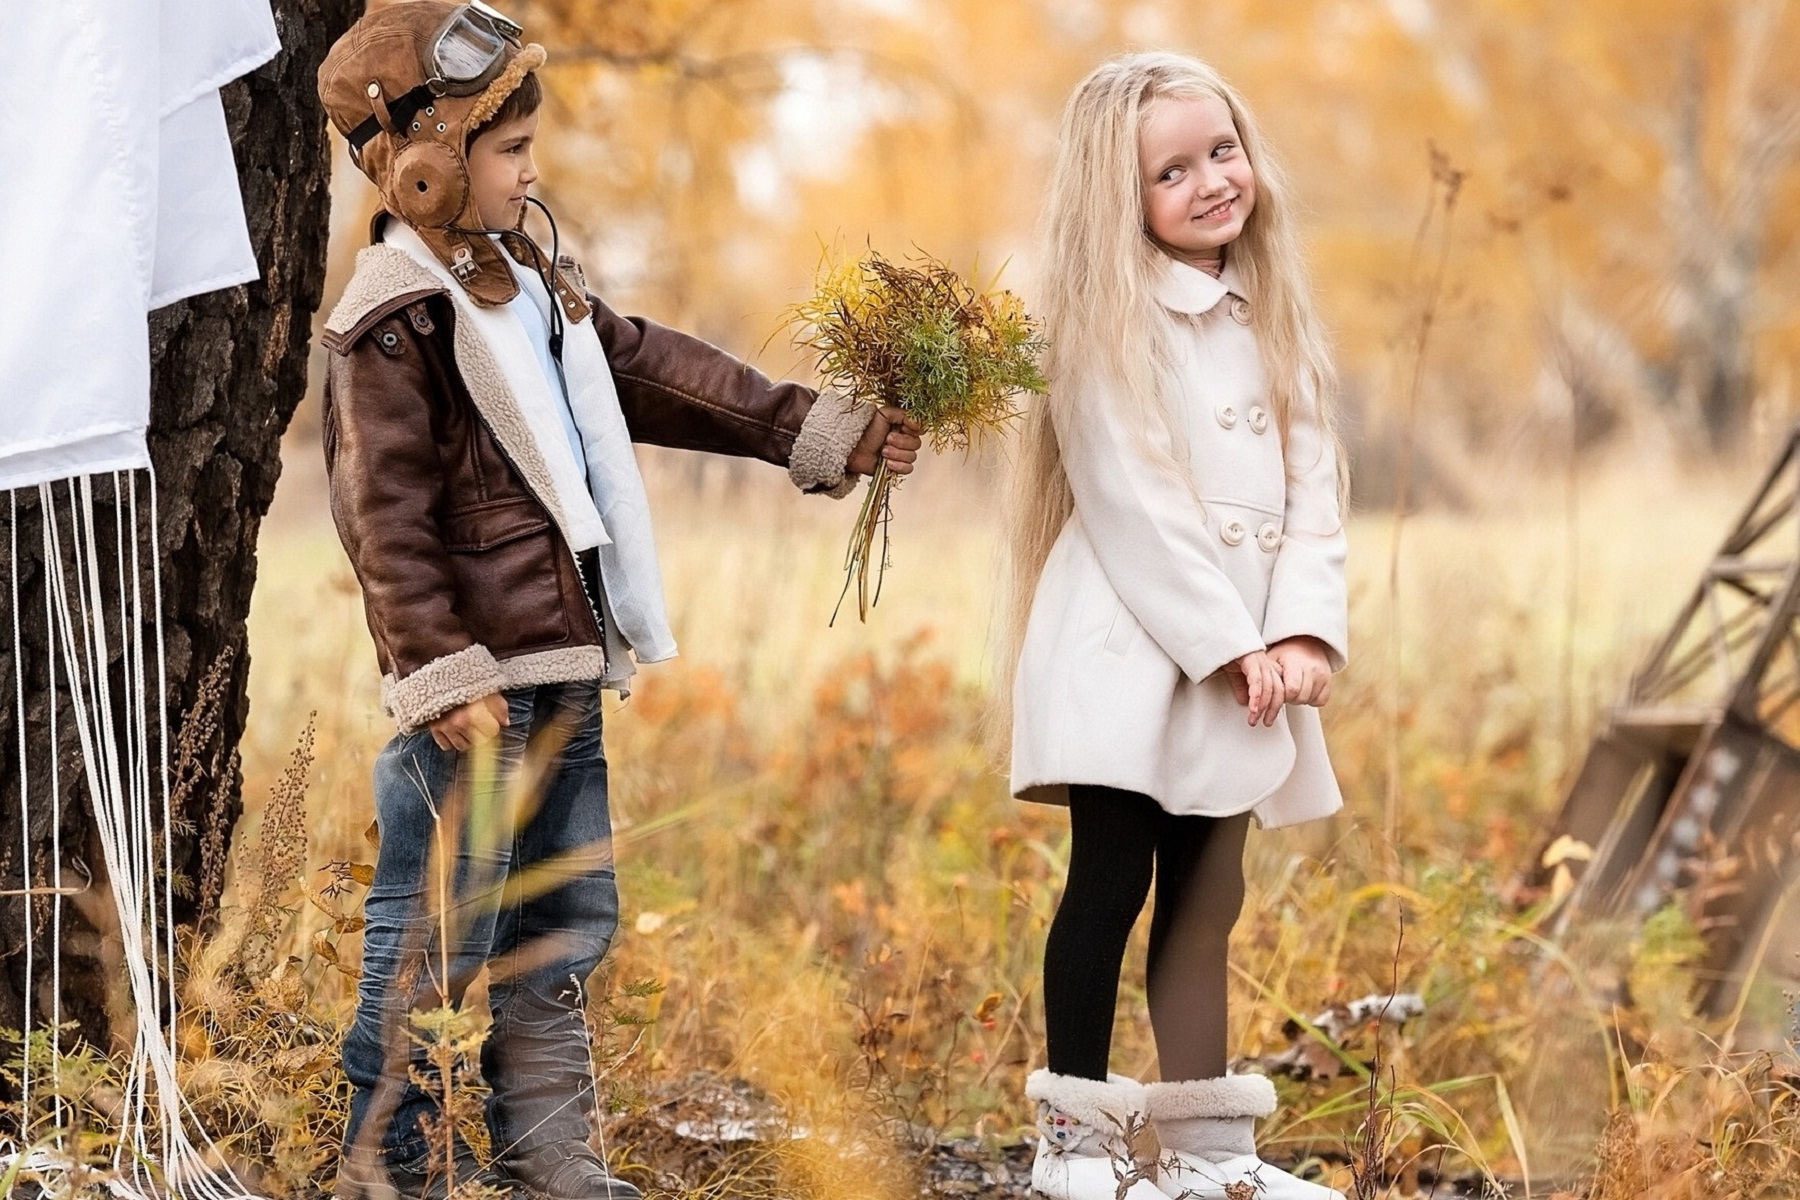 Girl Propose To Boy Wallpaper With Quotes Buy Boy Girl Poster At Lowest Price Arprbo27501nrt23814